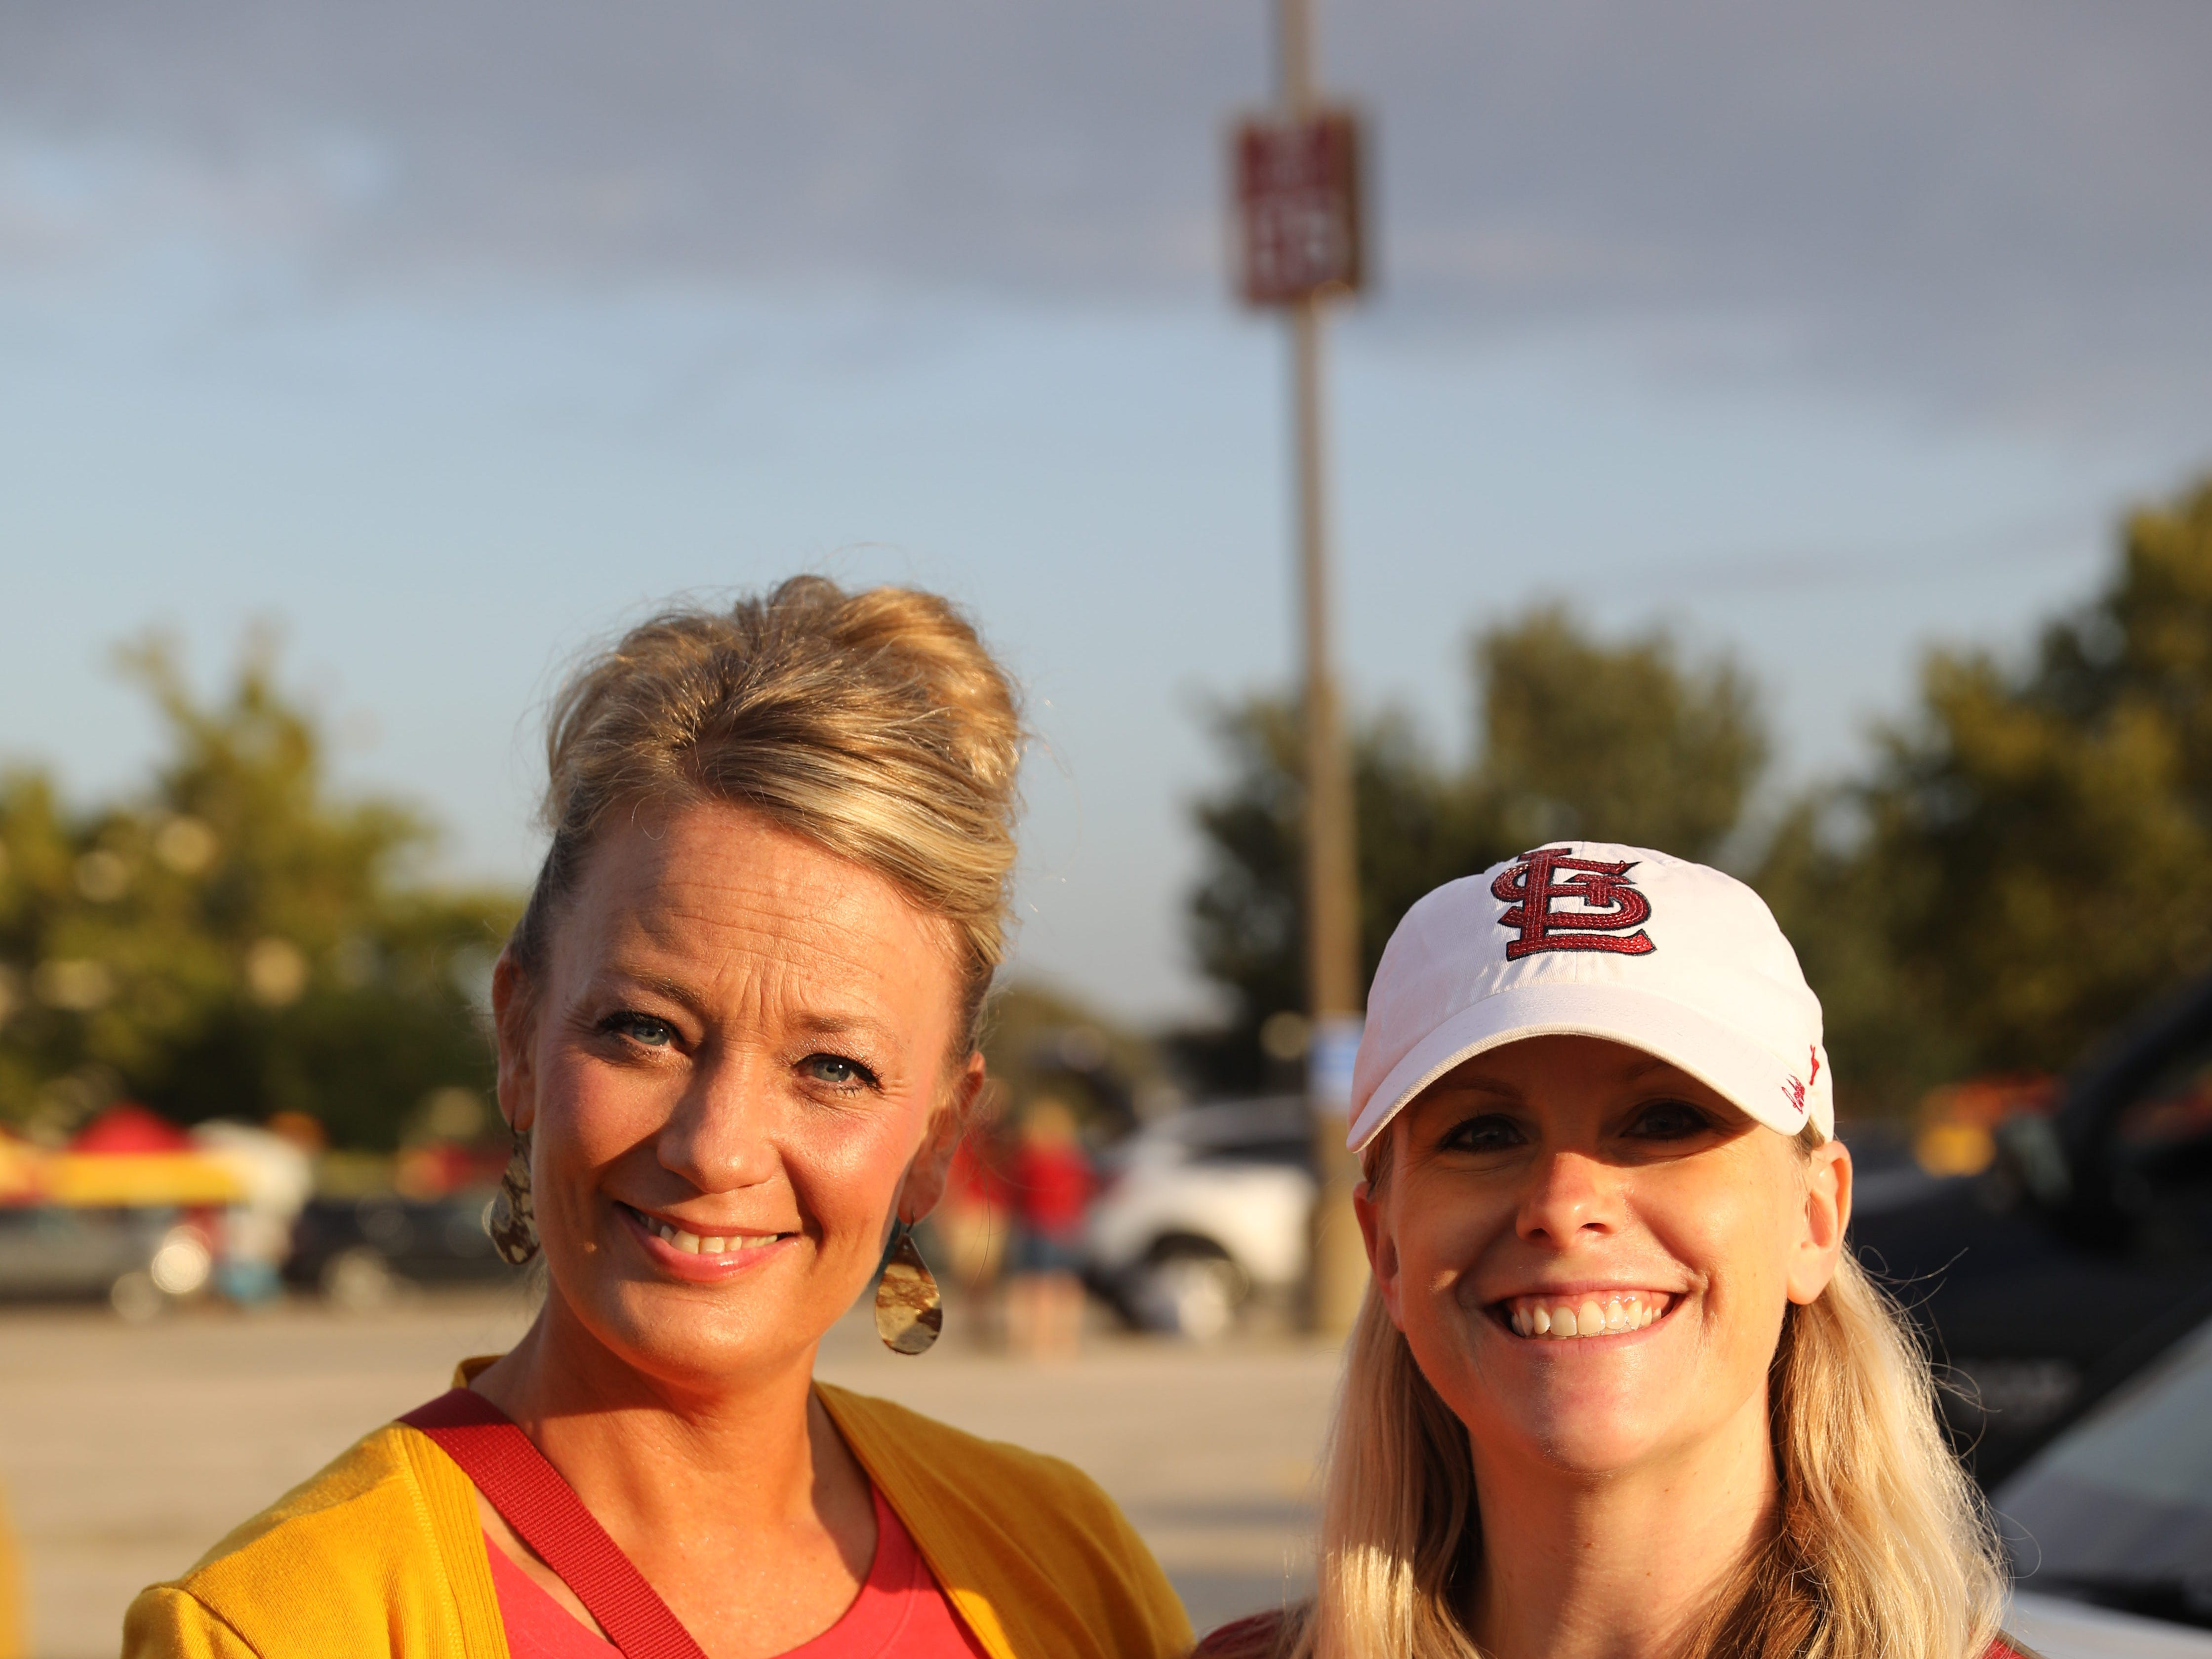 Toni Hamman of Madrid (left) and Sheena Nuetzman of Urbandale, Saturday, Sept. 15, 2018, before the Iowa State football game against Oklahoma in Ames.